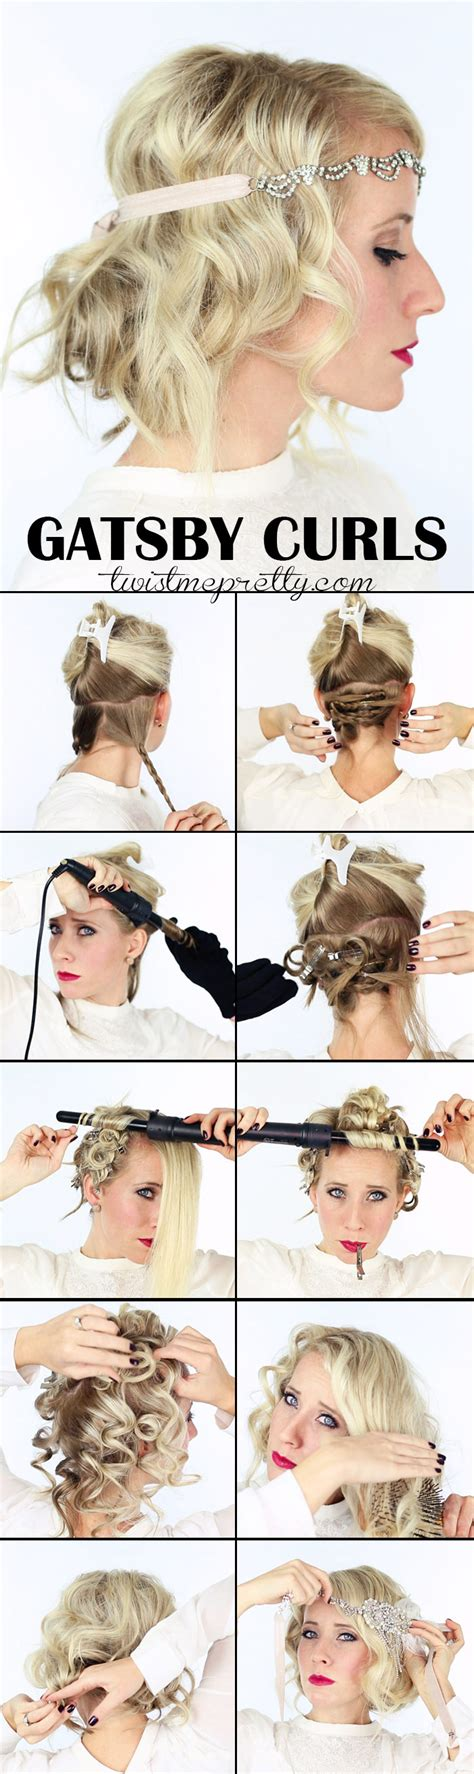 1920s wavy hair tutorials the great gatsby hairstyles for women short hairstyle 2013